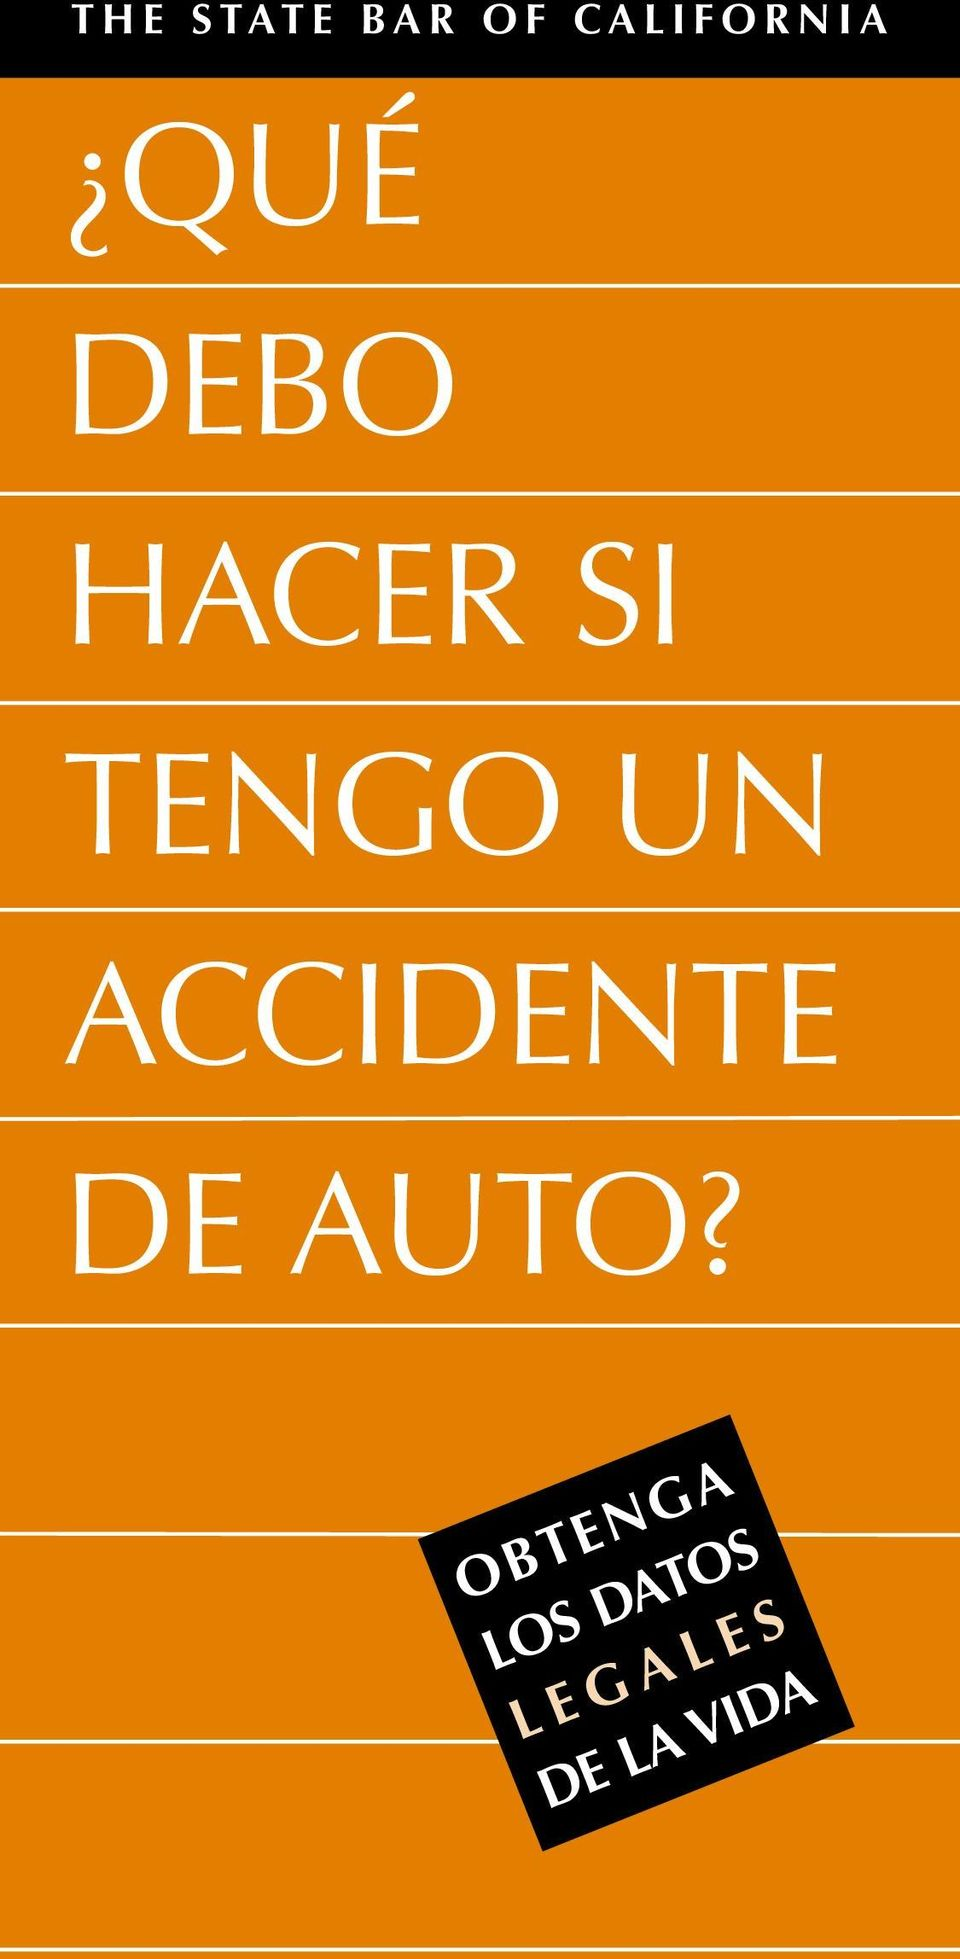 ACCIDENTE DE AUTO?